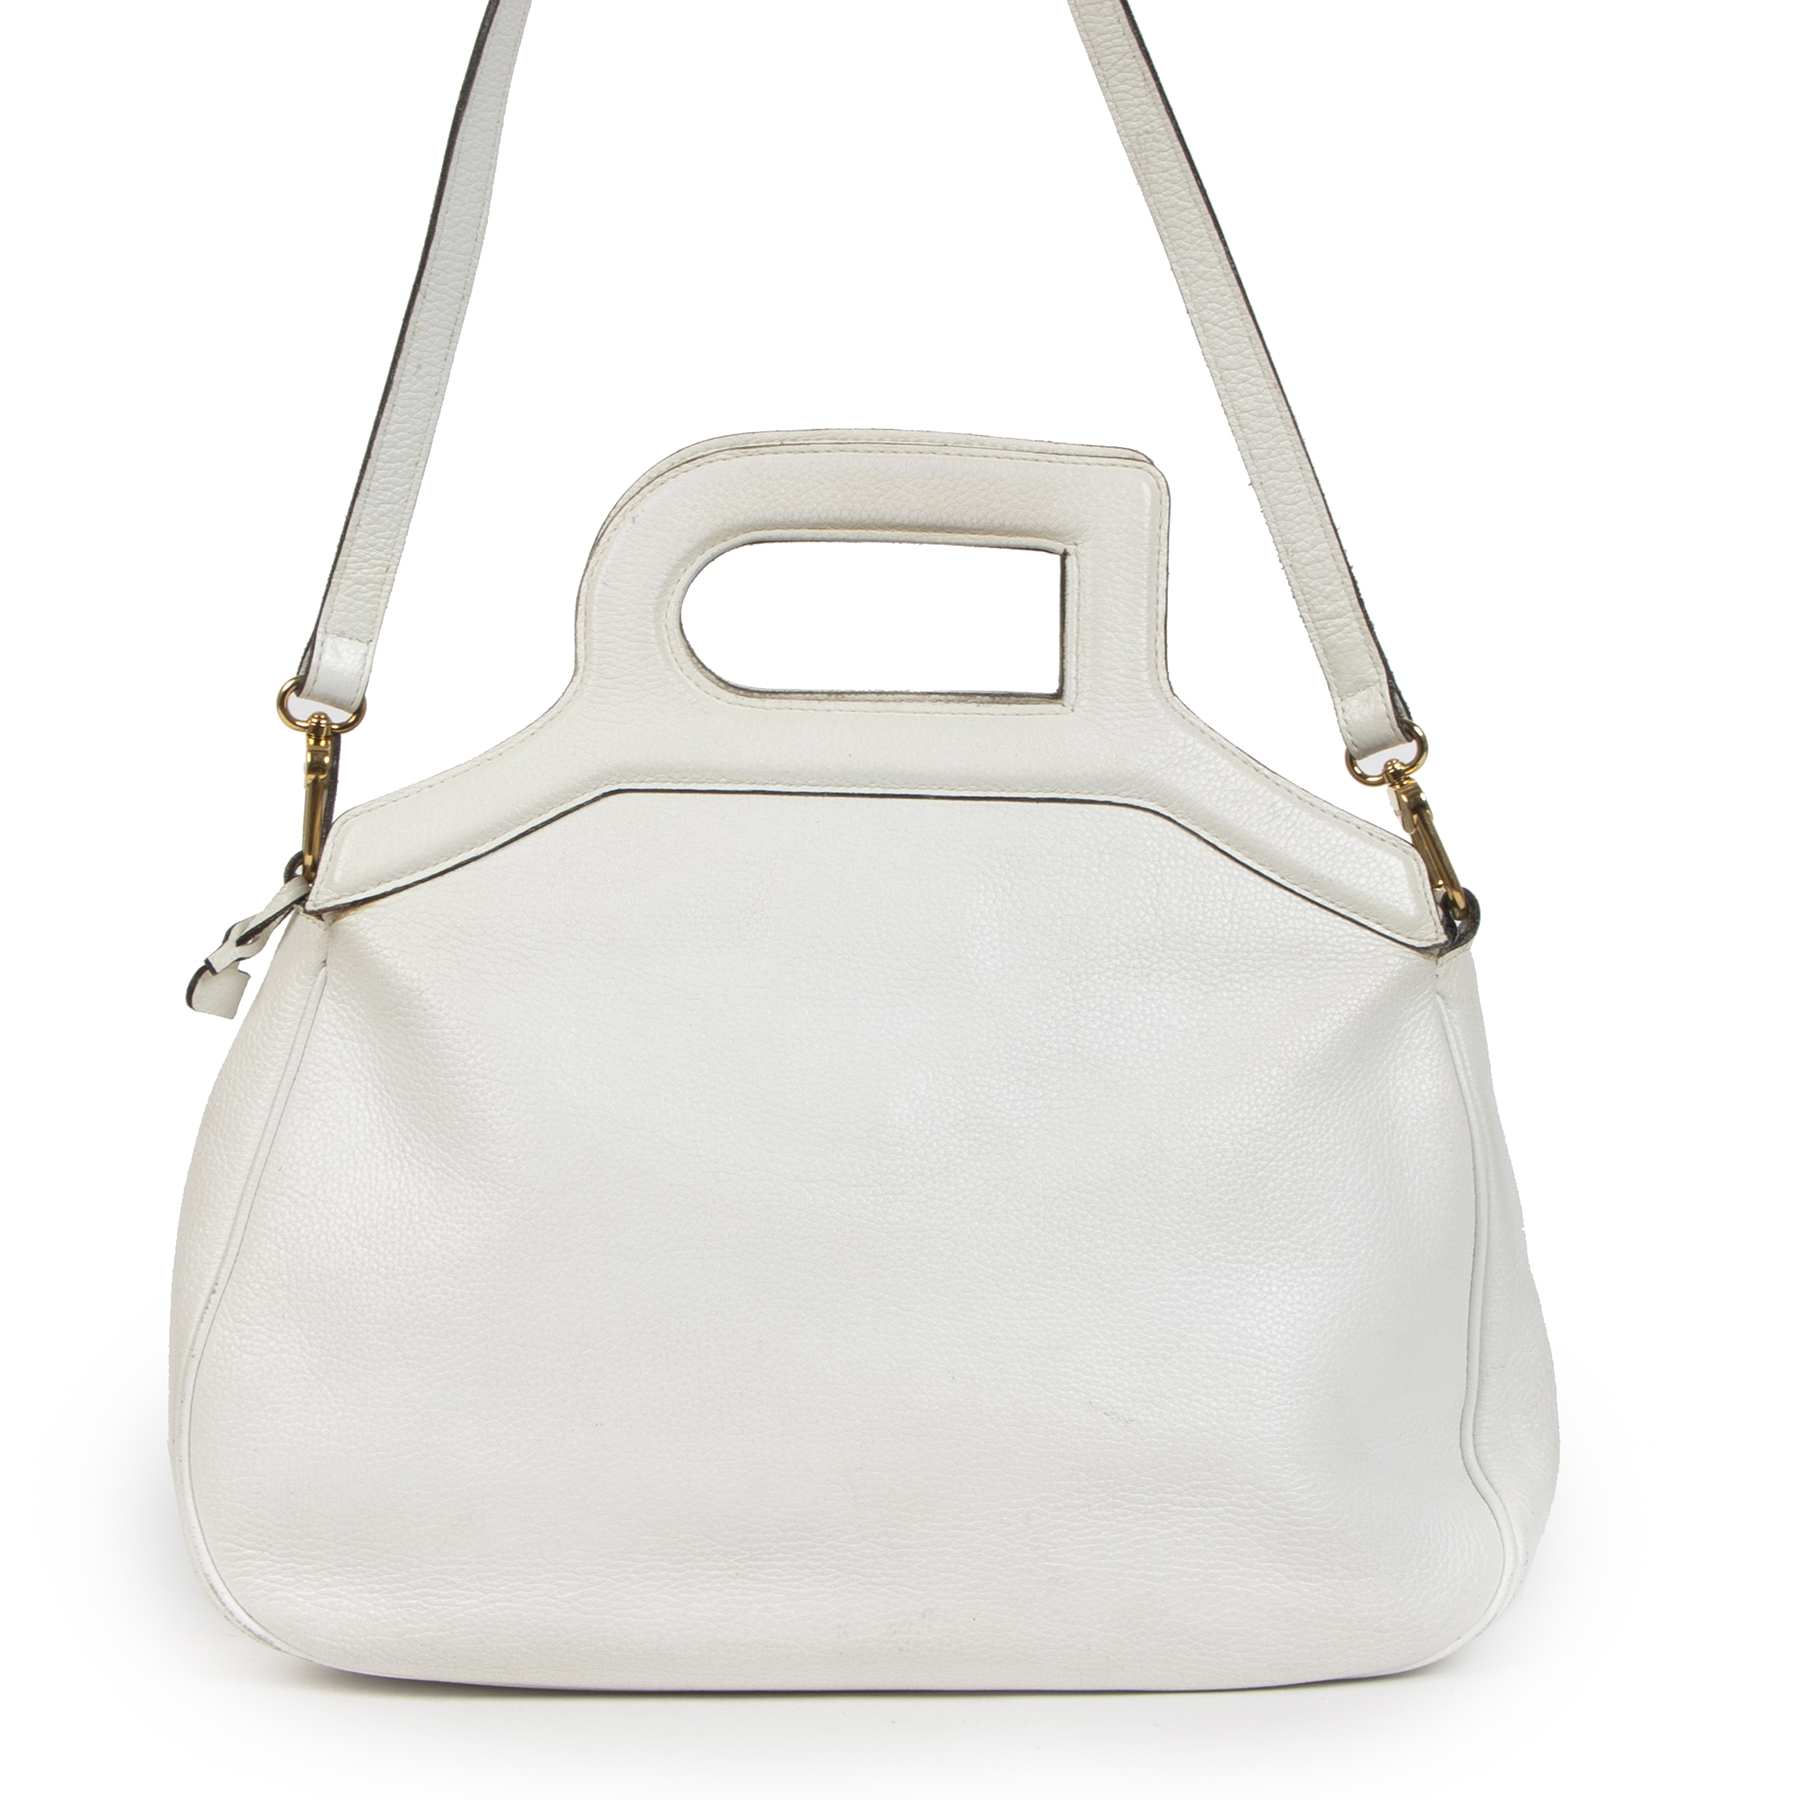 Authentieke tweedehands vintage Delvaux White D Top Handle Bag koop online webshop LabelLOV